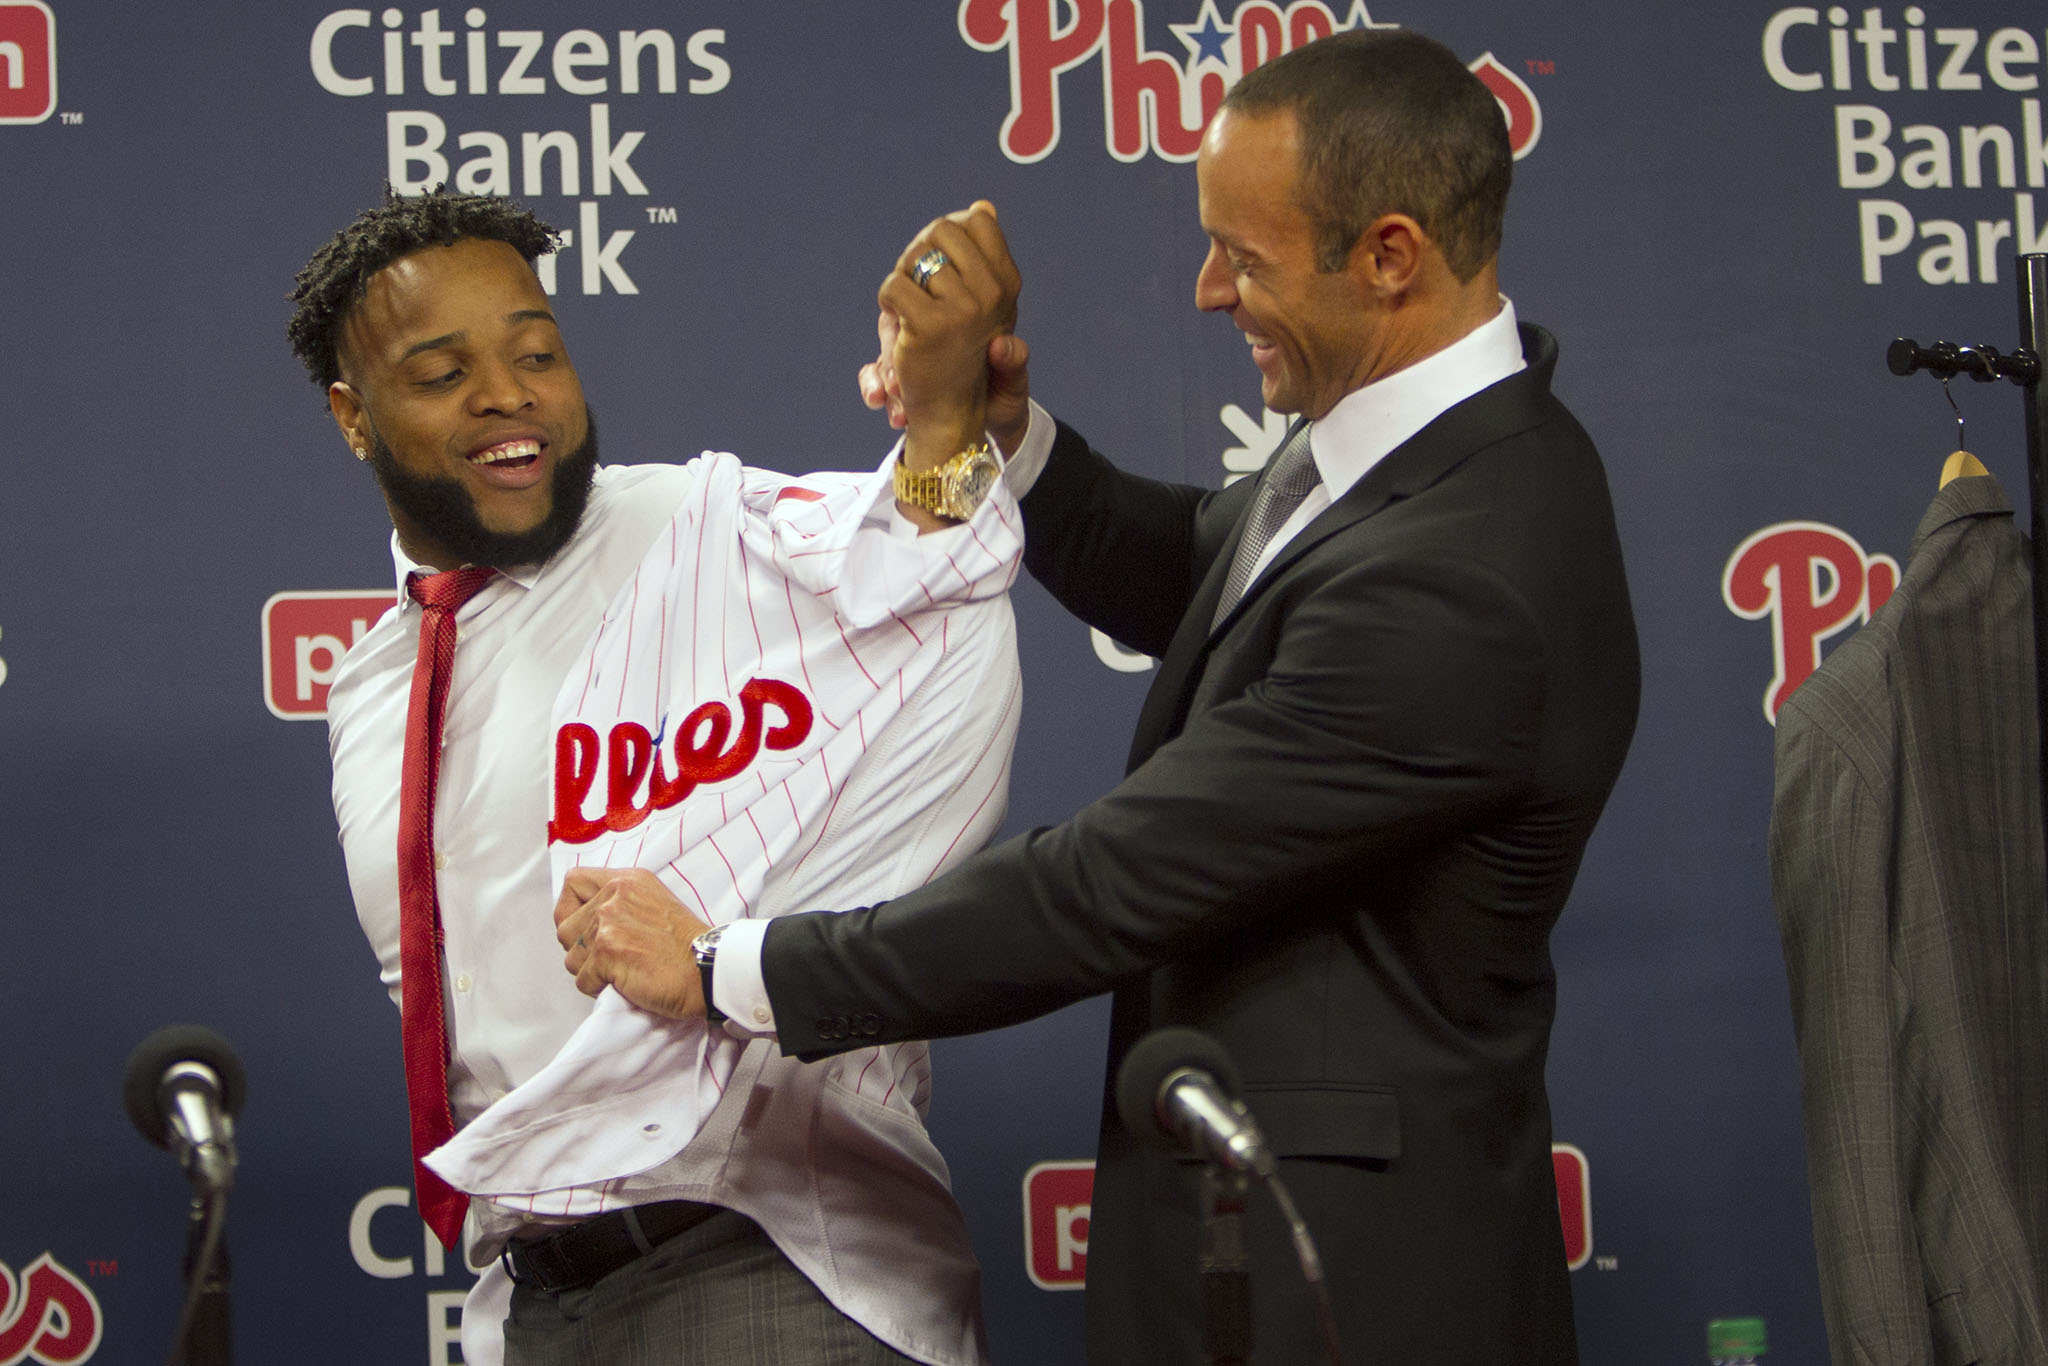 Philadelphia Phillies manager Gabe Kapler, helps newly signed first baseman Carlos Santana with his jersey as he was introduced to the media during a press conference, Wednesday, December 20, 2017.